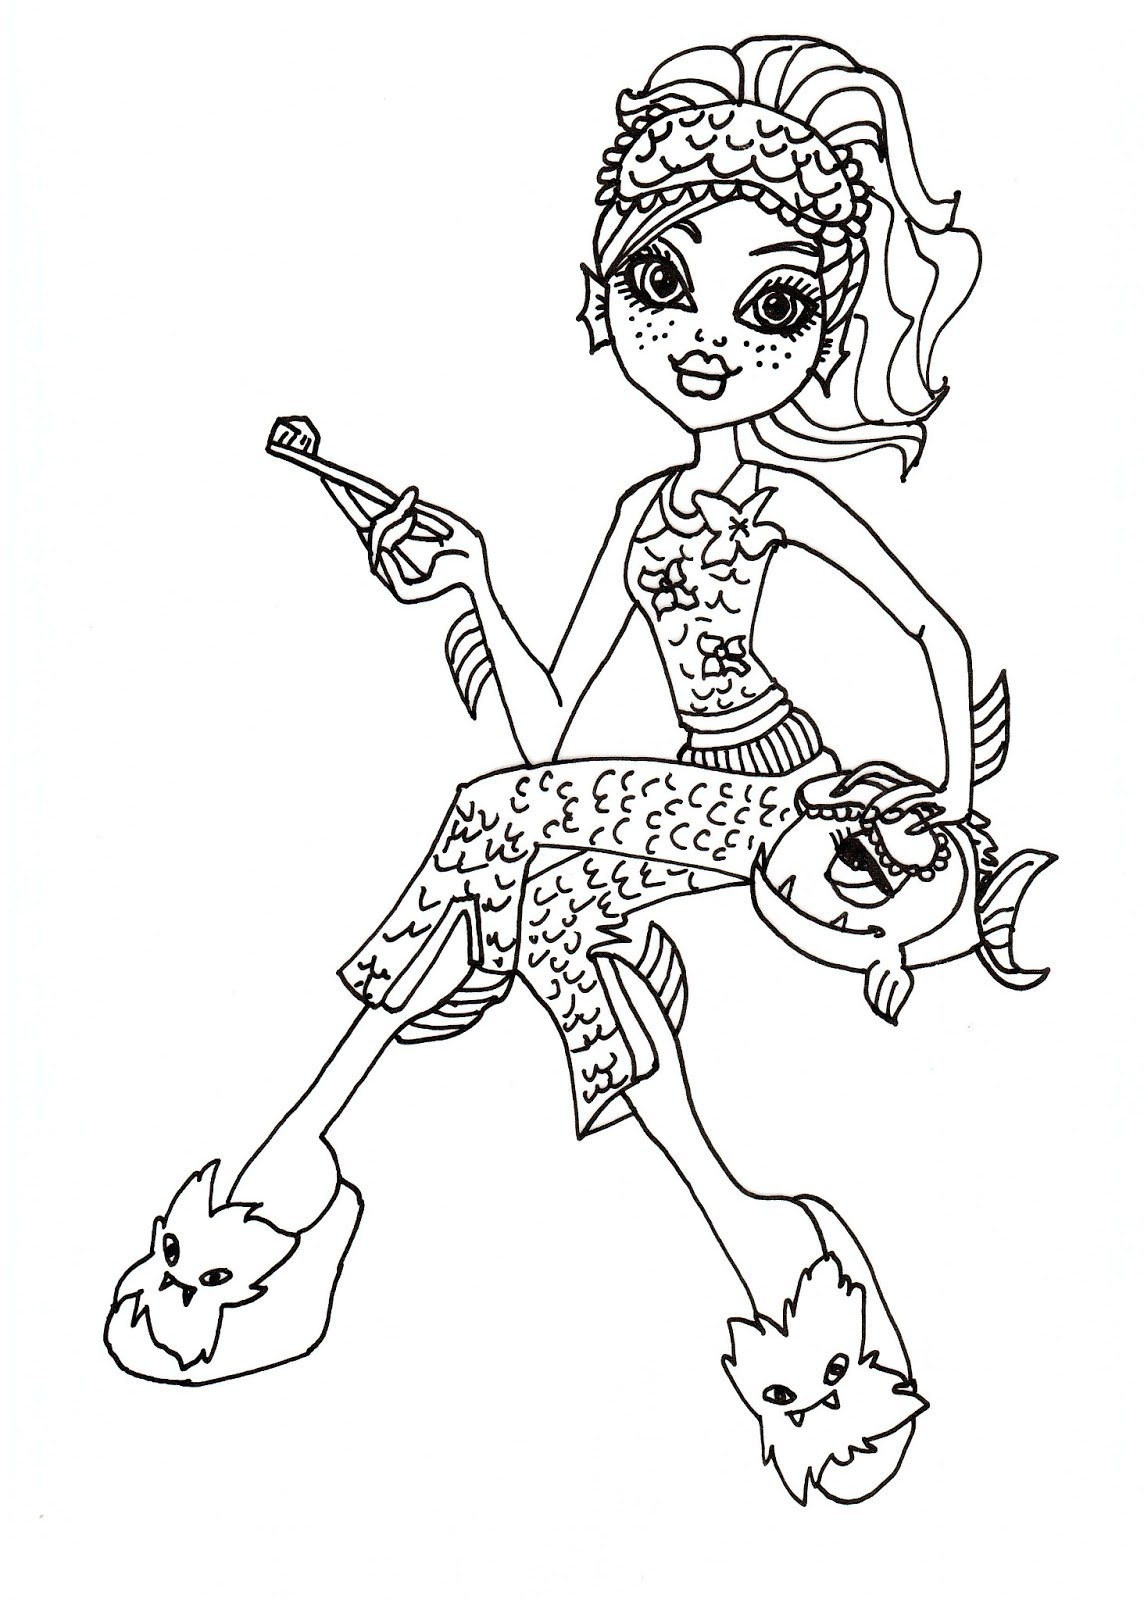 free printable monster high coloring pages lagoona blue with neptuna coloring sheet. Black Bedroom Furniture Sets. Home Design Ideas